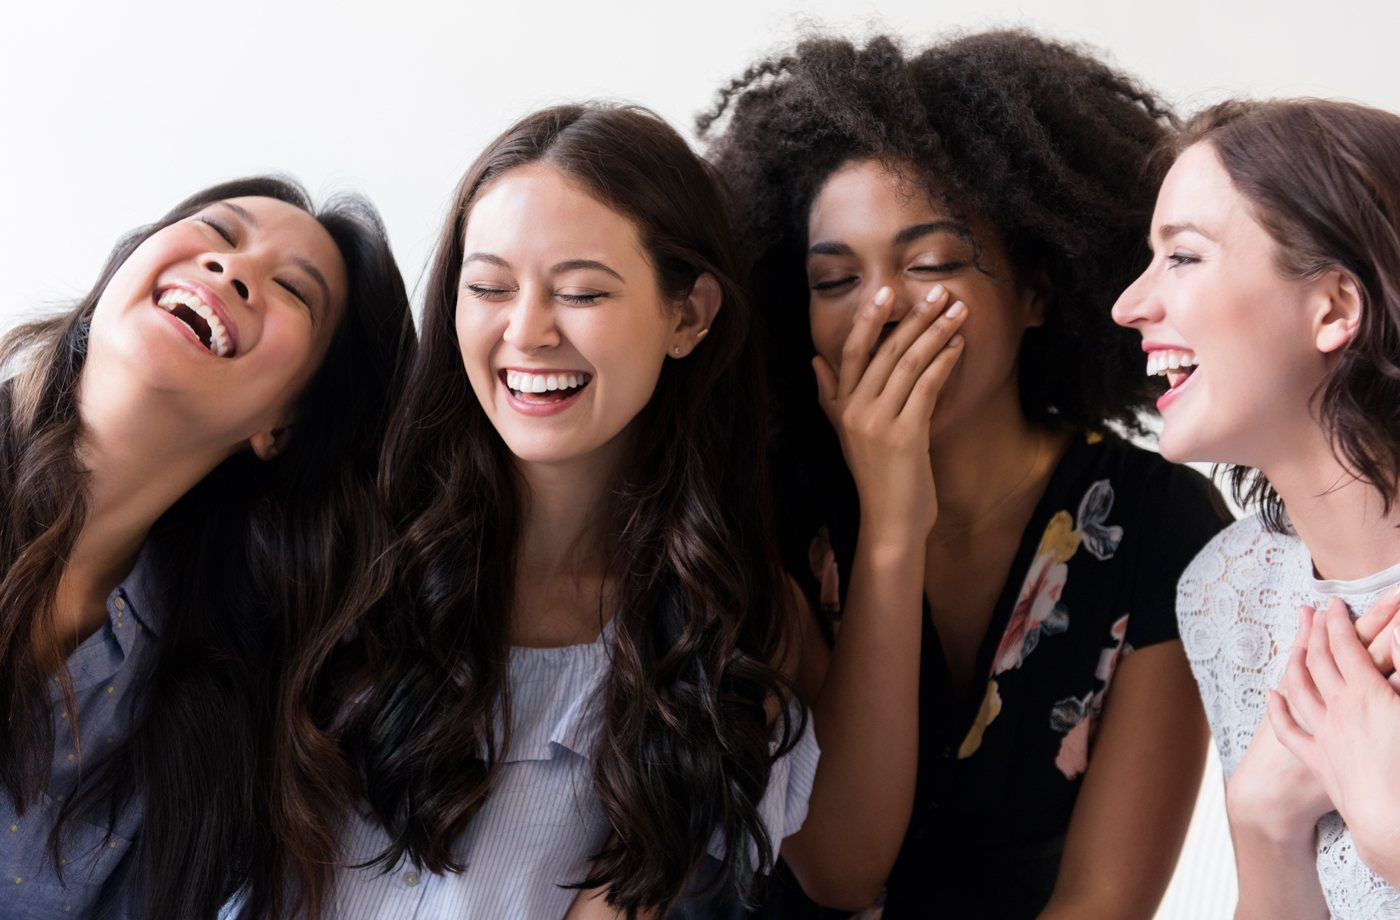 Sorry, Myers-Briggs: New research says there are just *4* personality types